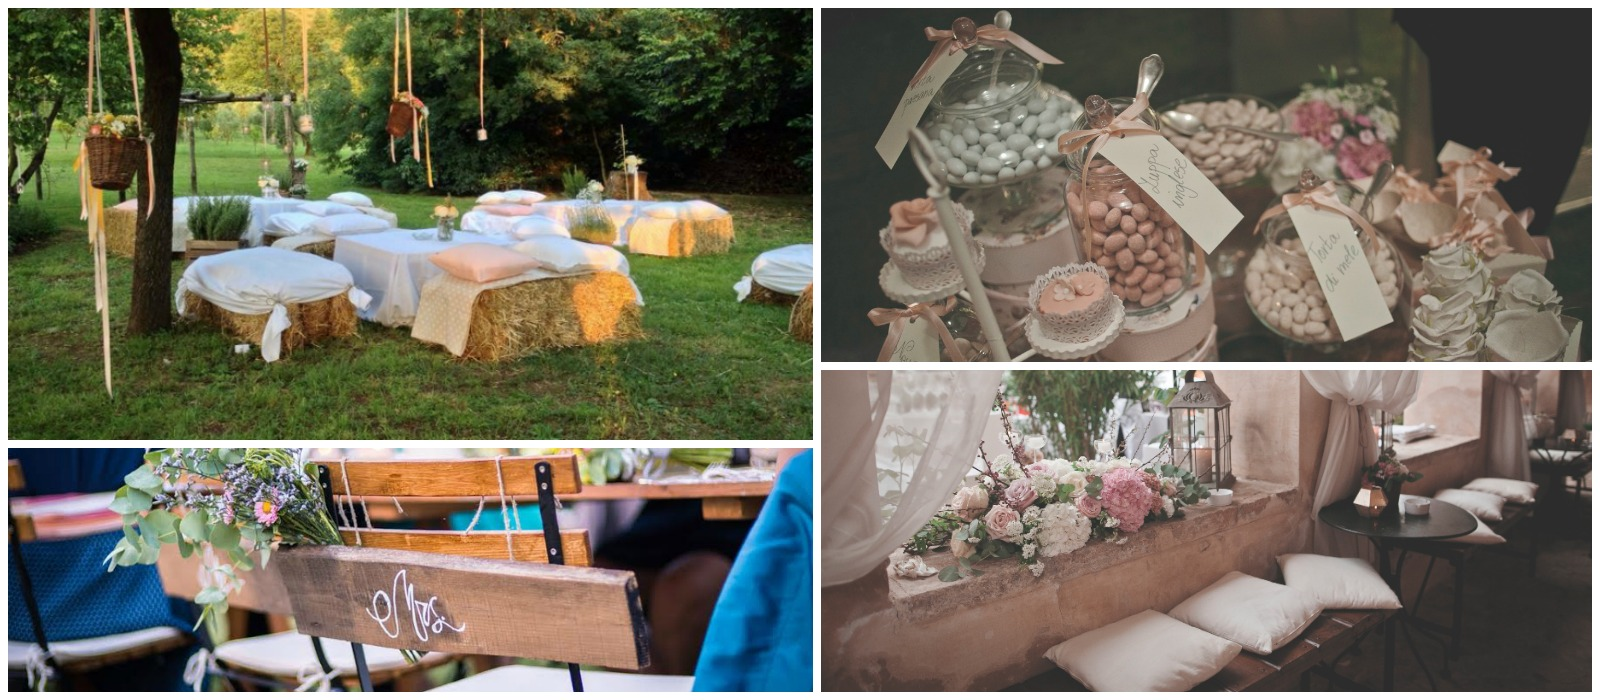 apollinare-country-chic-wedding